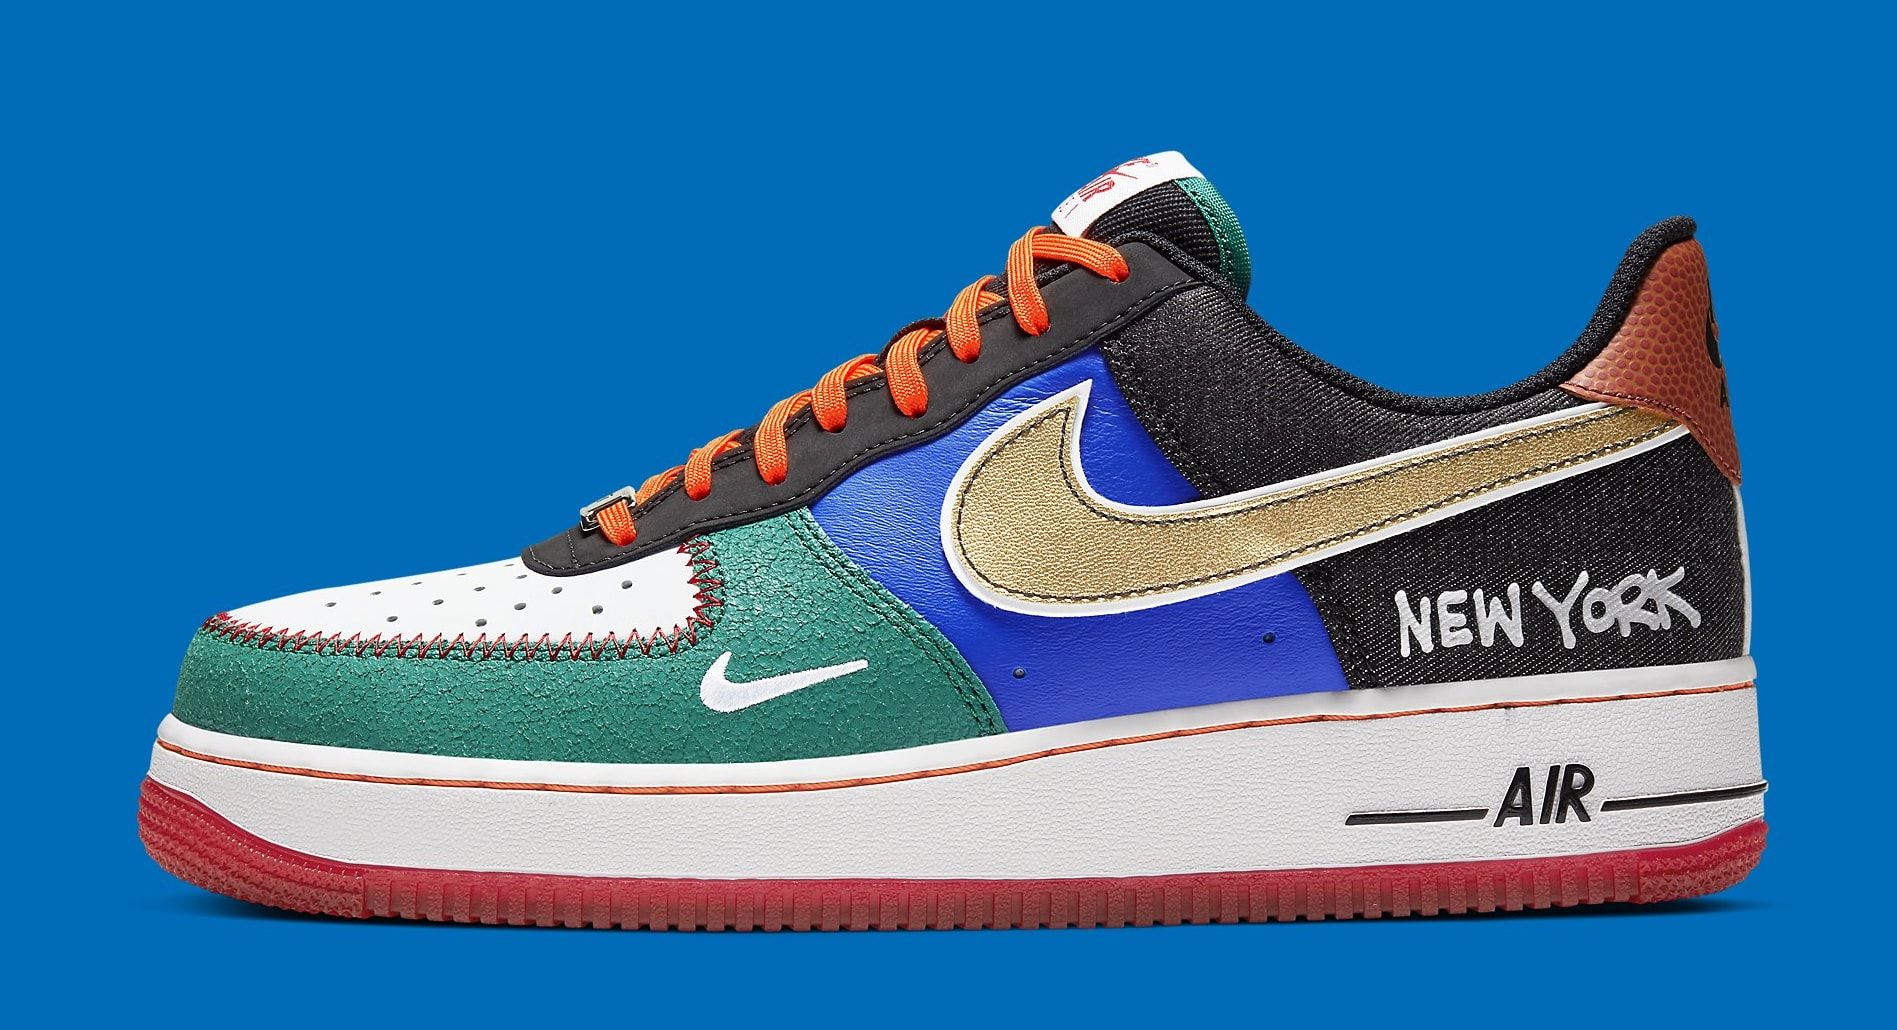 Nike Air Force 1 Low 'What The NYC' Release Date CT3610-100 ...